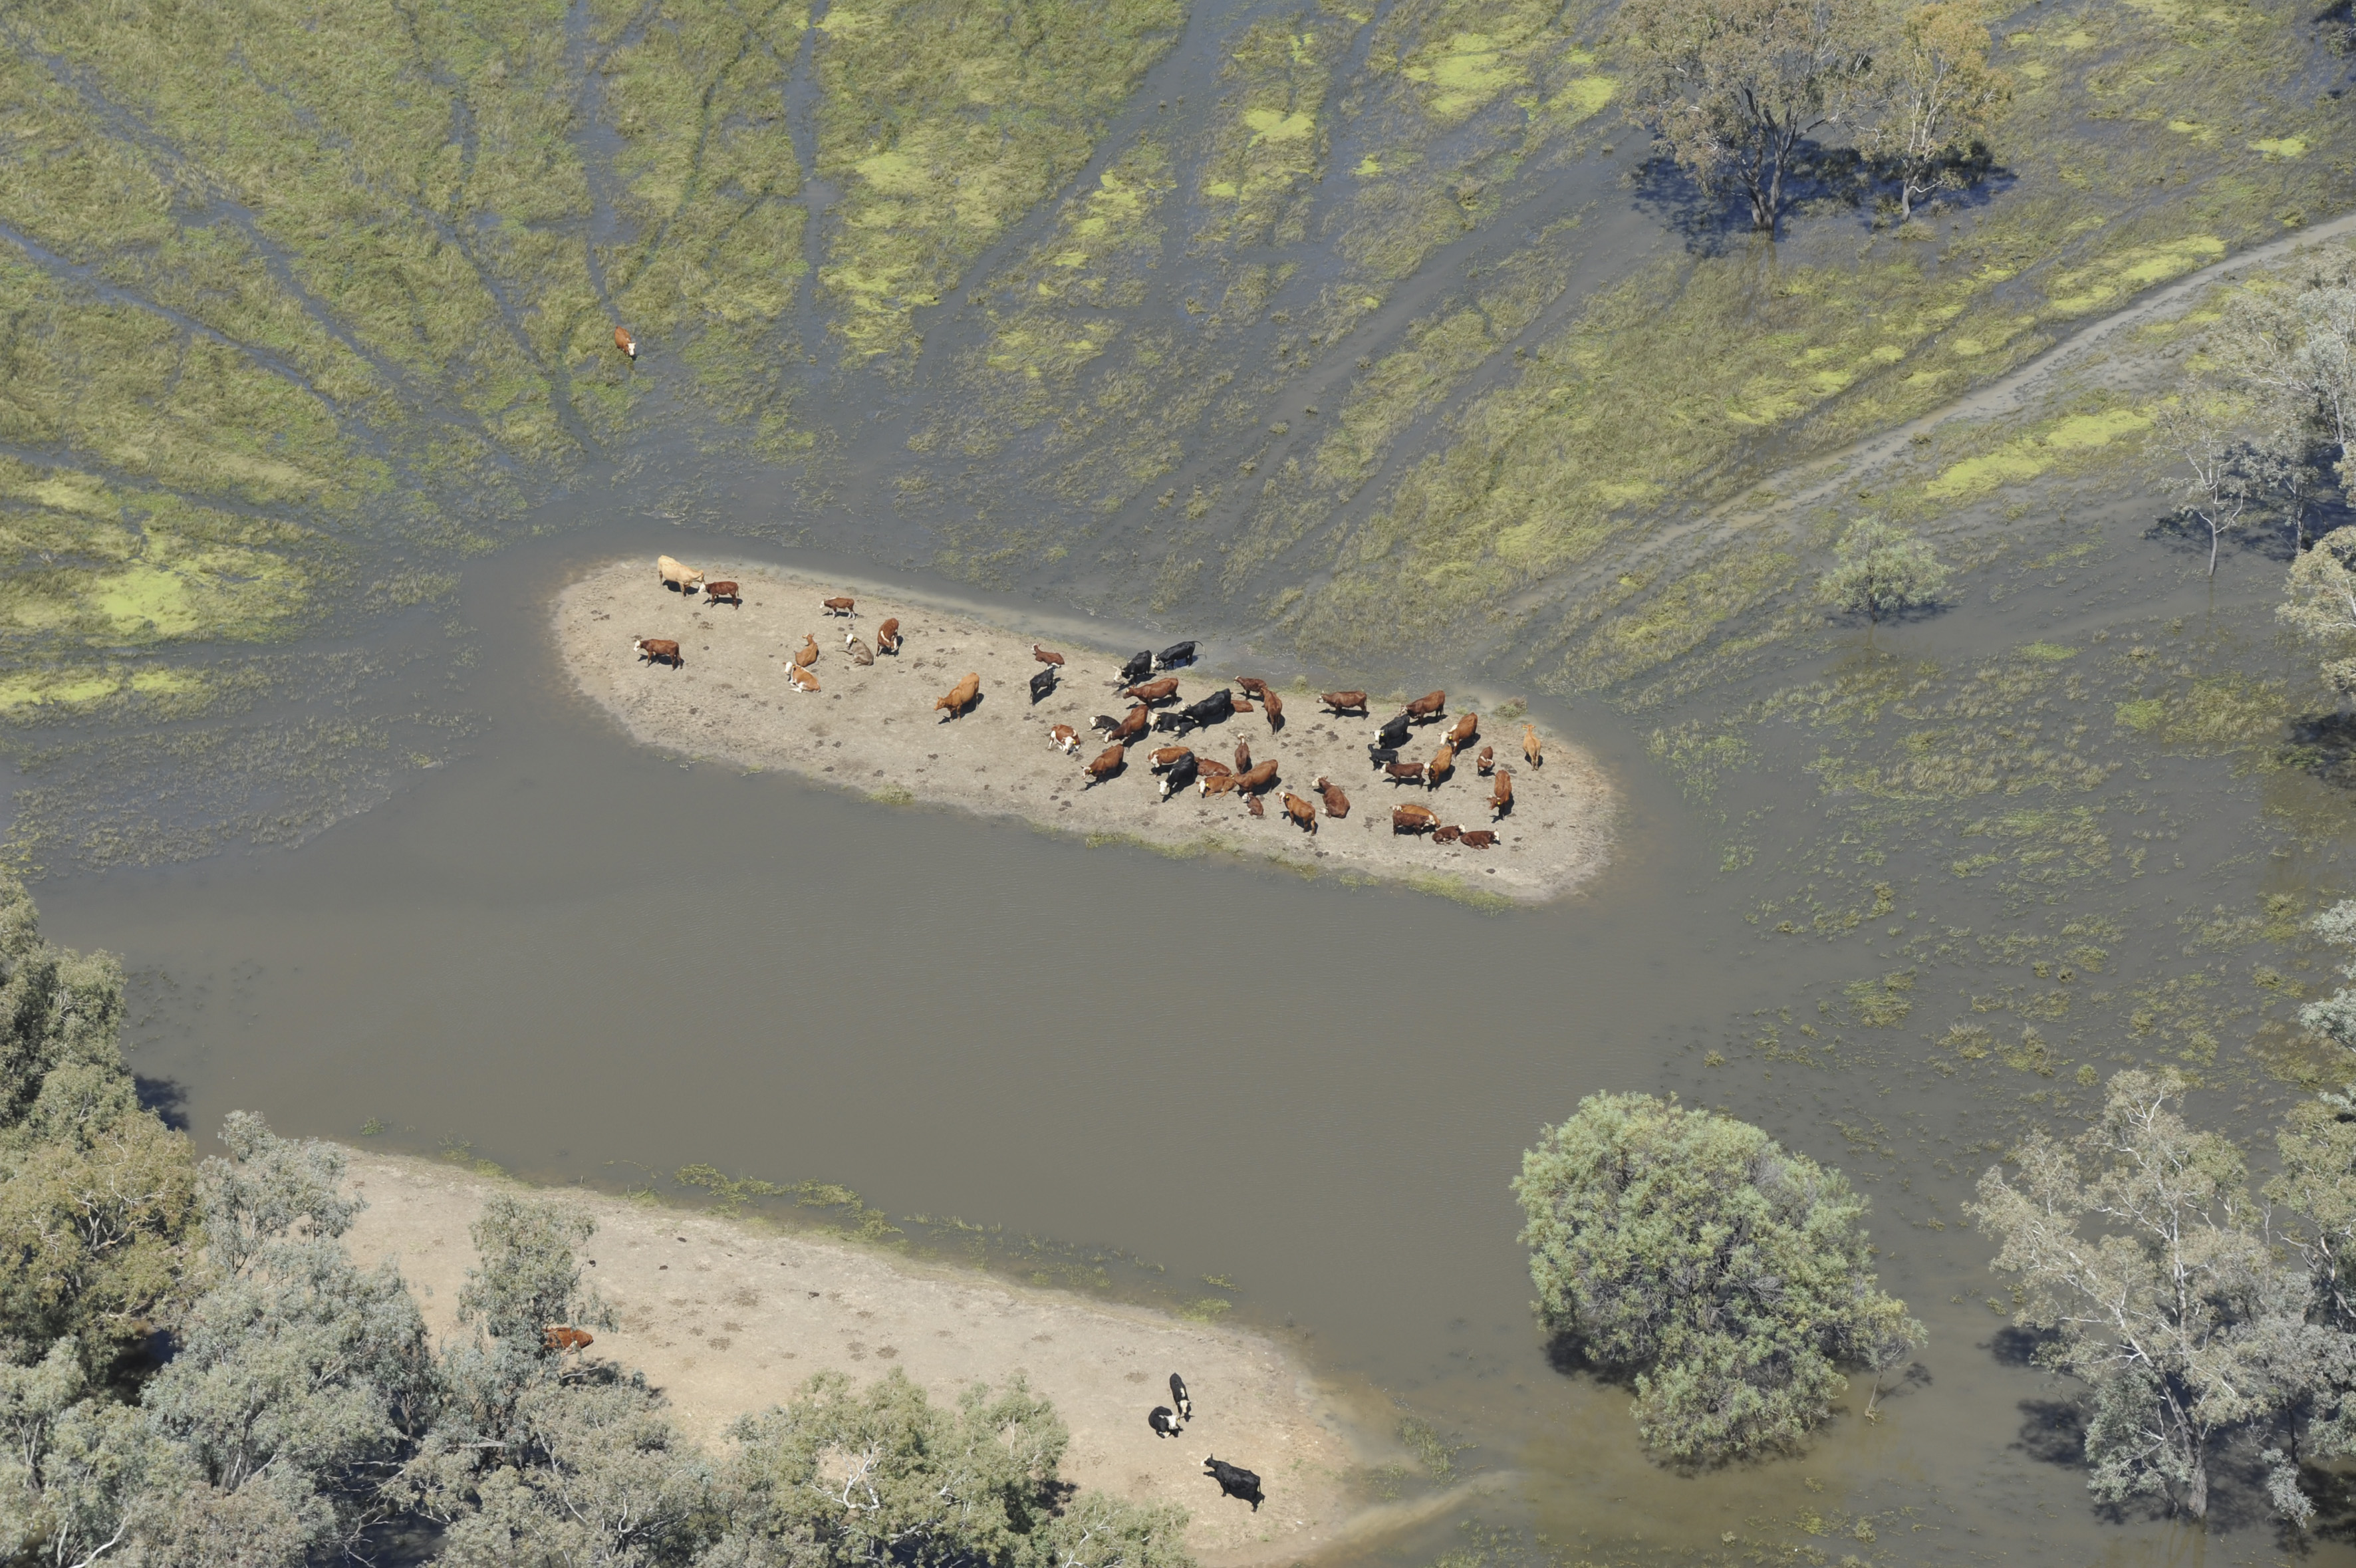 Cattle stand together surrounded by water with no escape passage